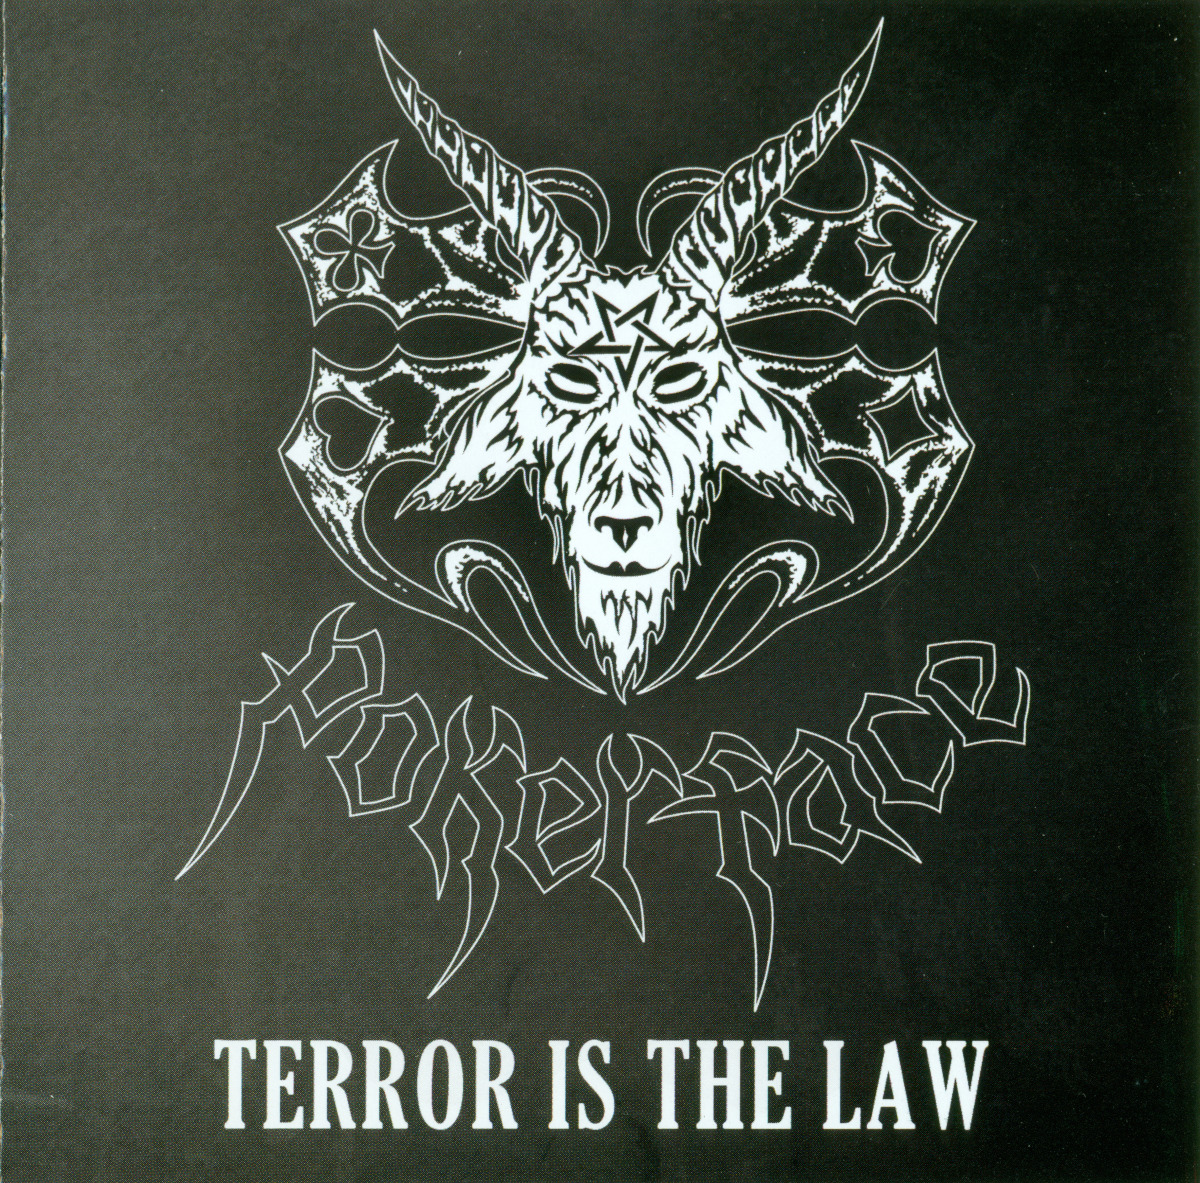 Pokerface — Terror Is The Law EP (2014)